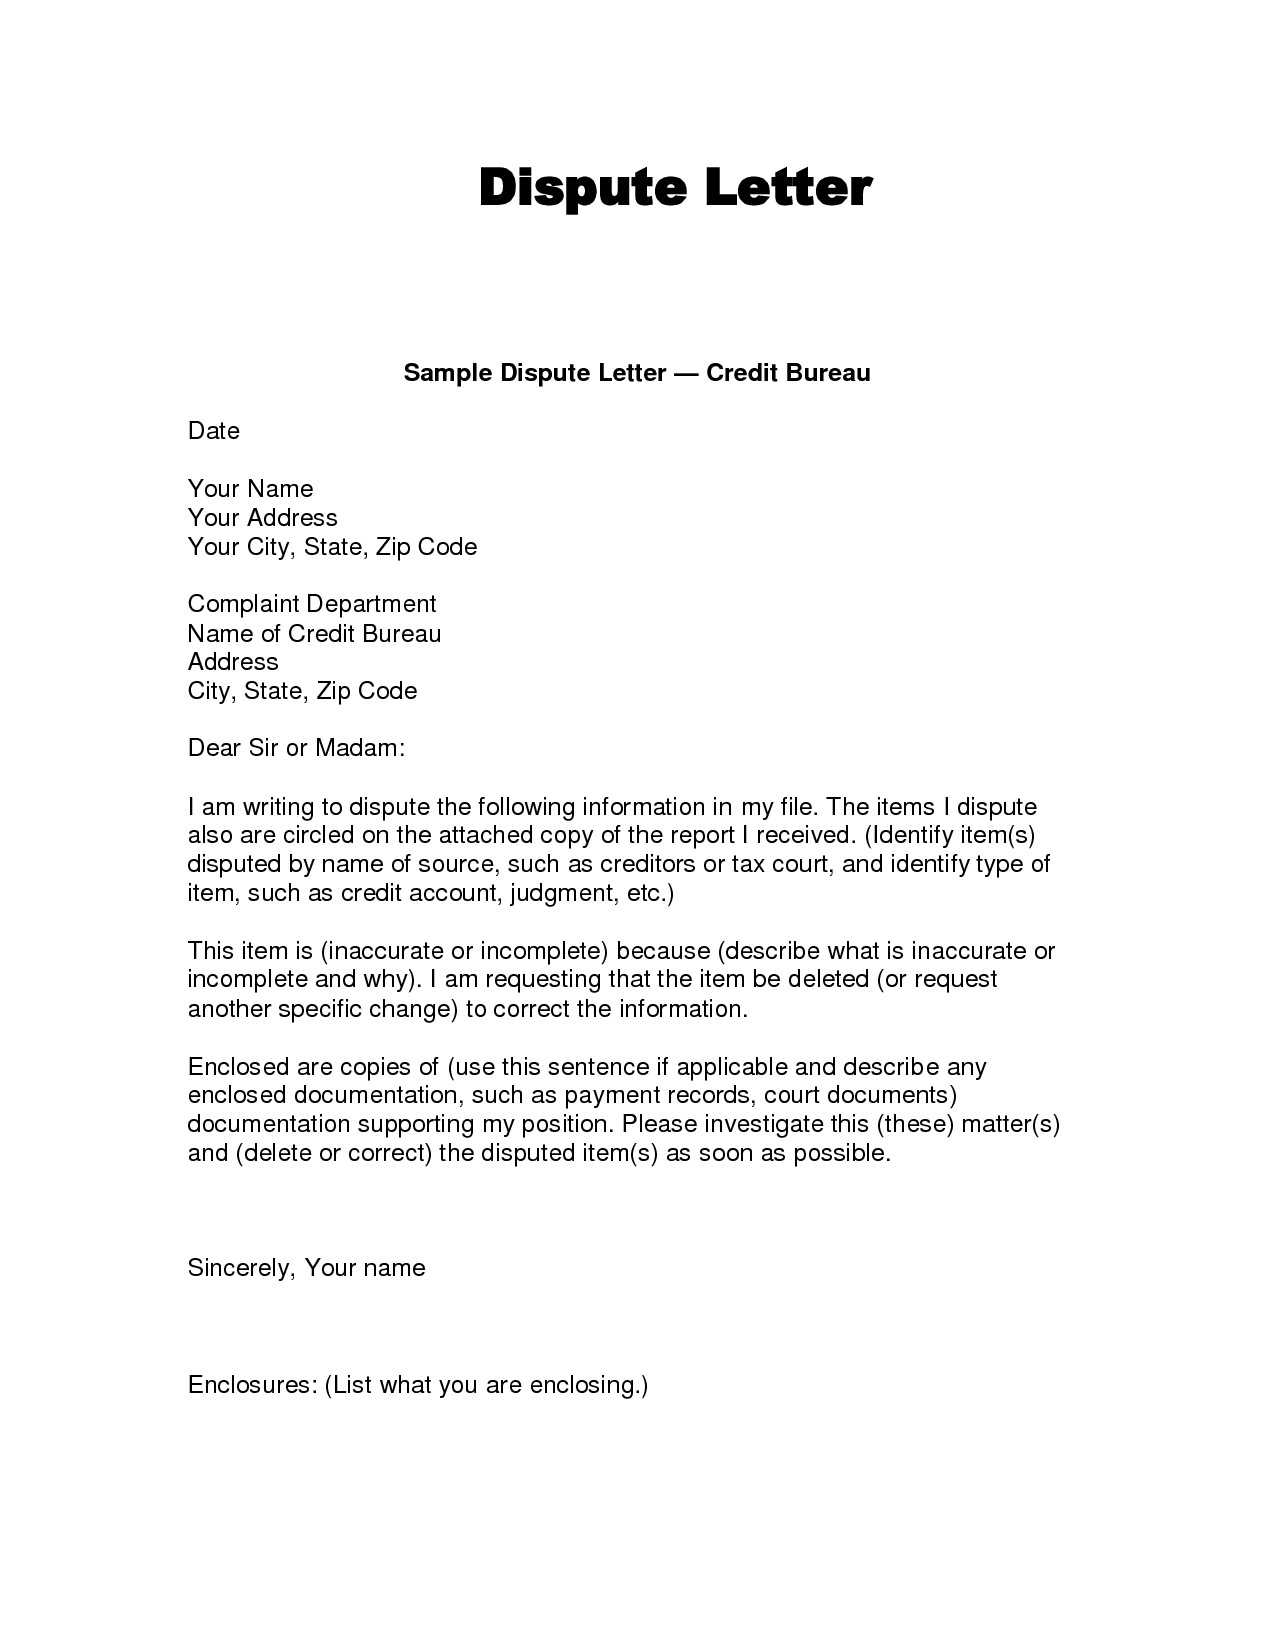 Credit Agency Dispute Letter Template - Sample Credit Report Pdf with How to Write A Dispute Letter Luxury